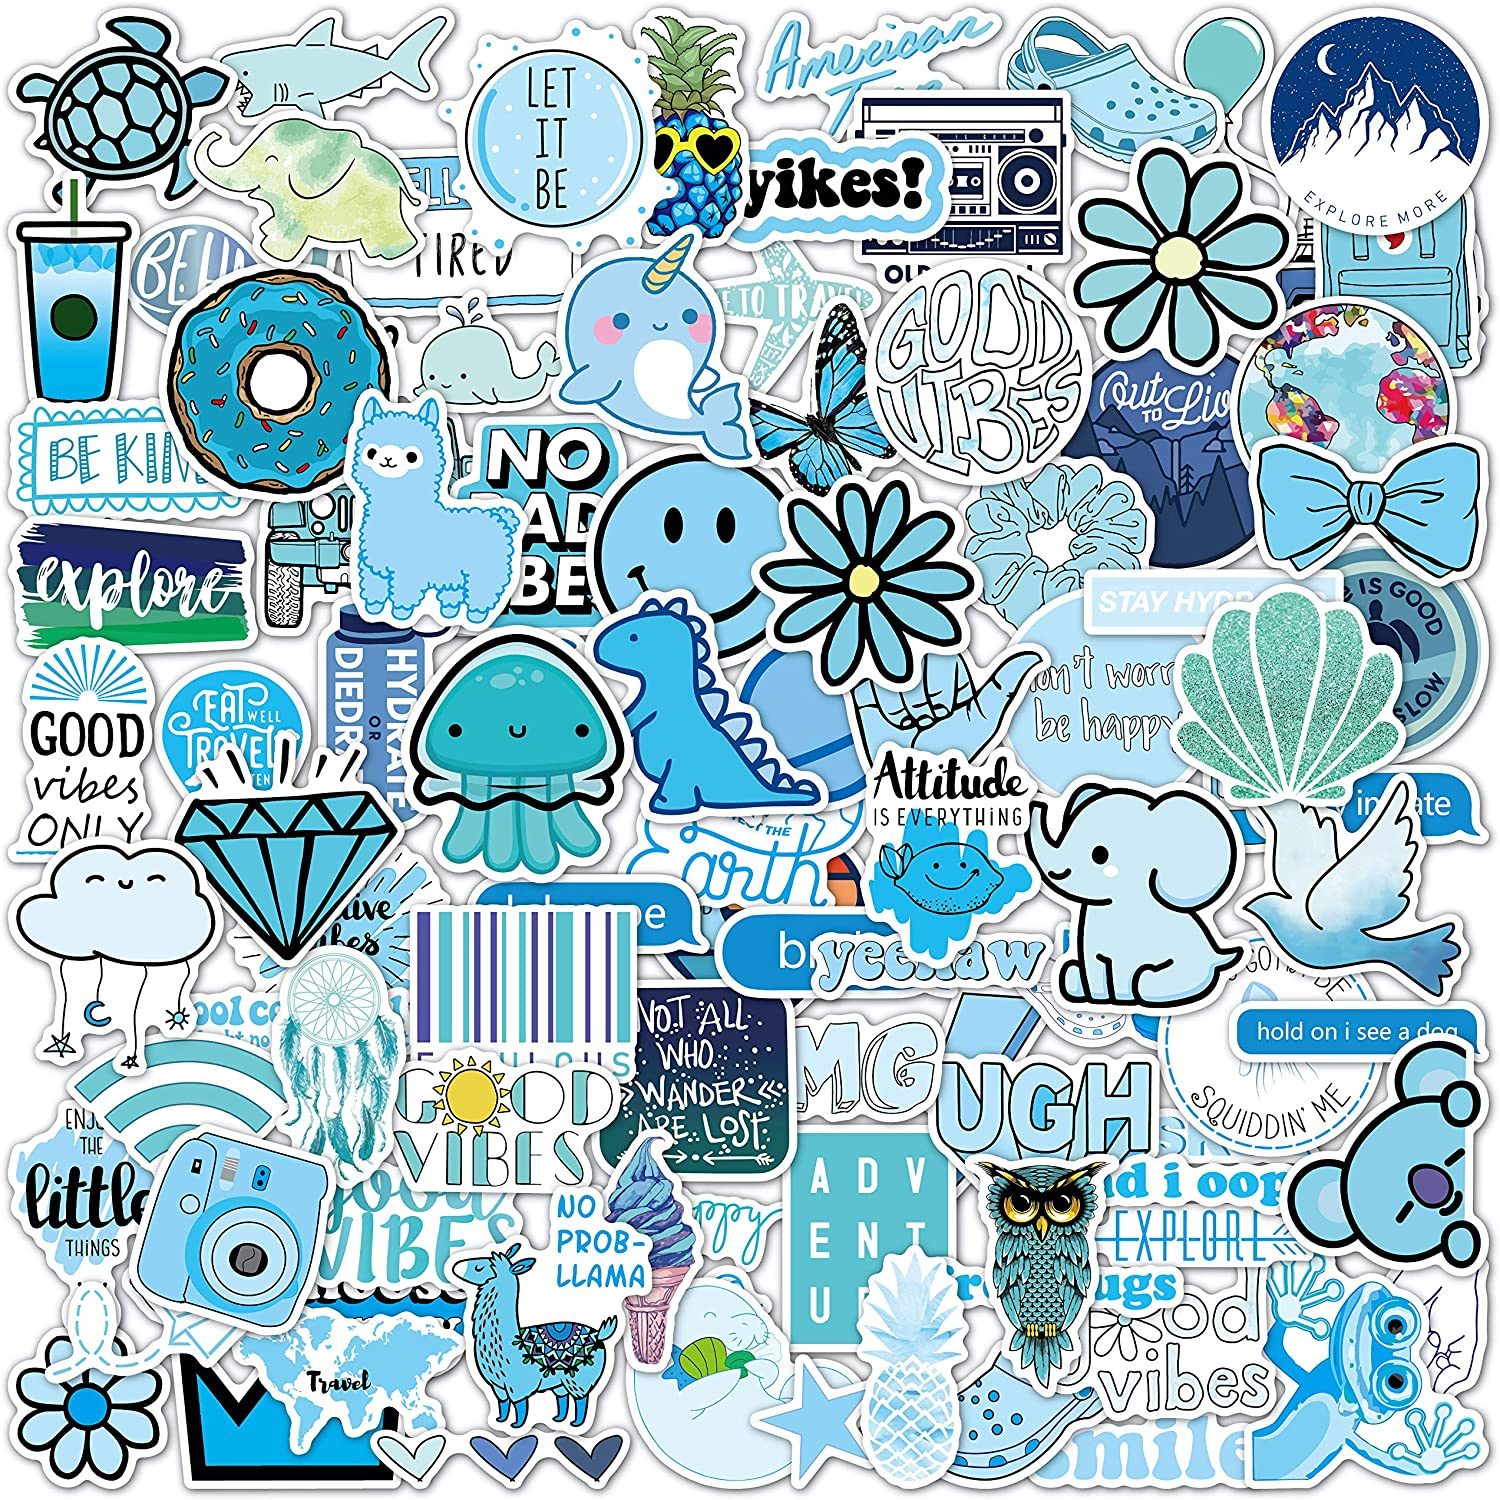 Vsco Stickers 100 Pack I Cute Blue Stickers Waterproof 100% Vinyl Stickers I Vsco Girls Stuff, Aesthetic Stickers, Vsco Stickers for Water Bottle, Laptop Stickers, Cellphone (100 Pack, Blue)